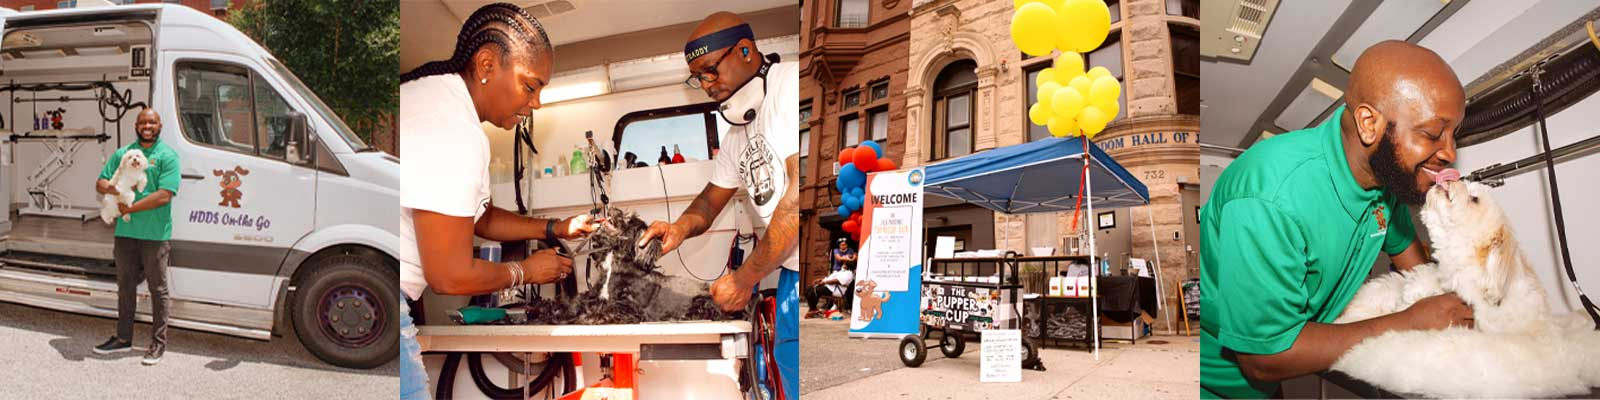 Pup Relief Tour hits the streets with their mobile van and grooming set ups to take care of pets in need